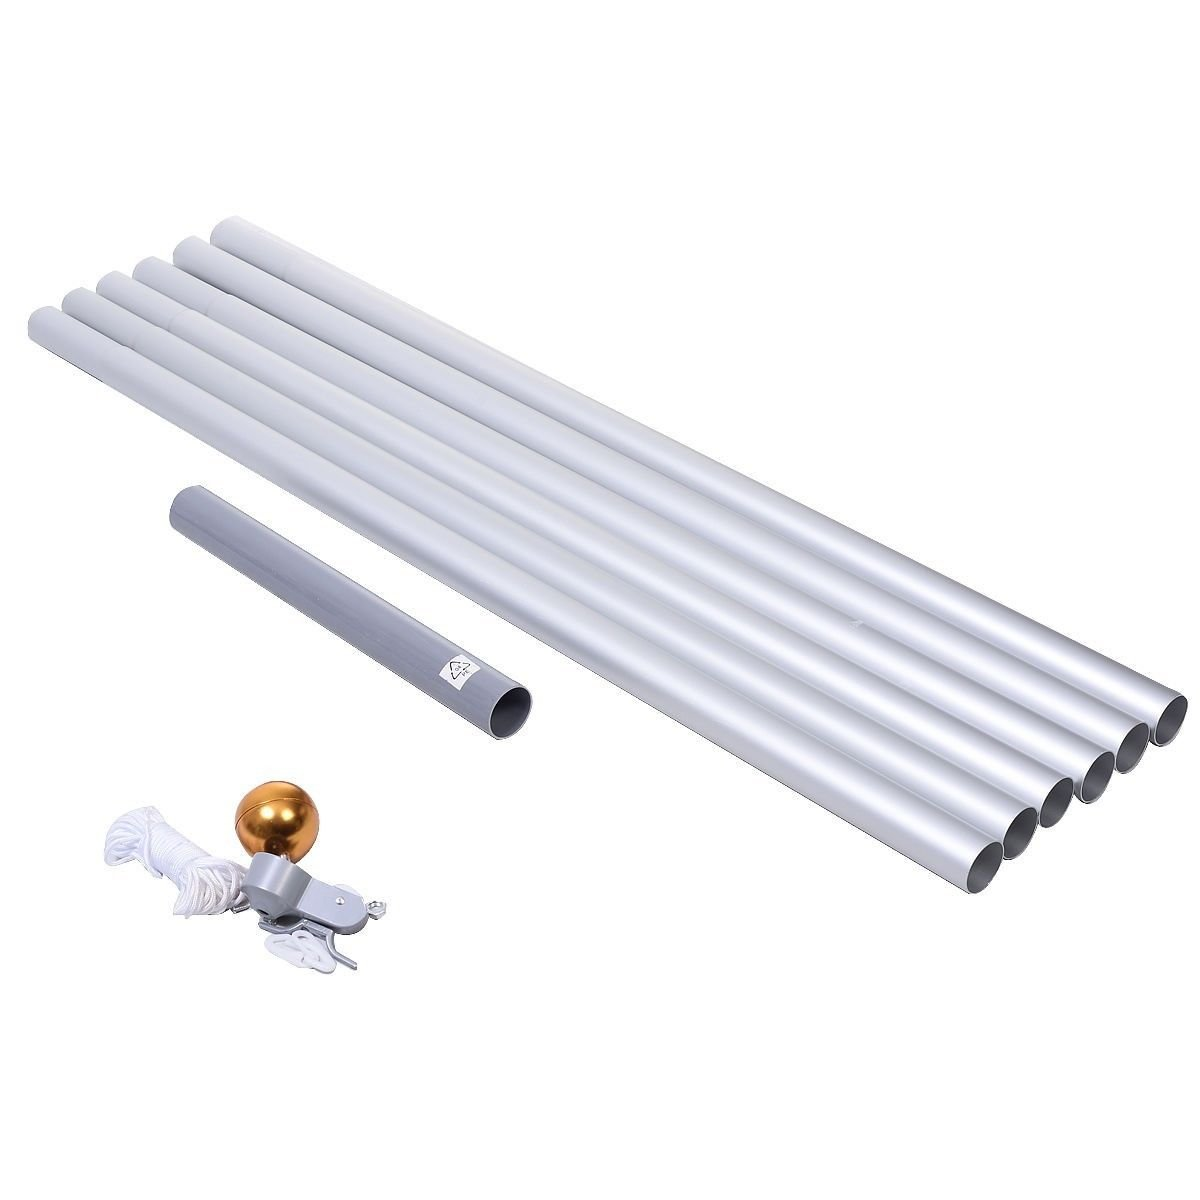 Lotus energy 25FT Extra Thick Aluminum Sectional American Flag Pole, Super Tough Heavy Duty US Outdoor Residential Flagpole Kit with Golden Ball Topper, Silver